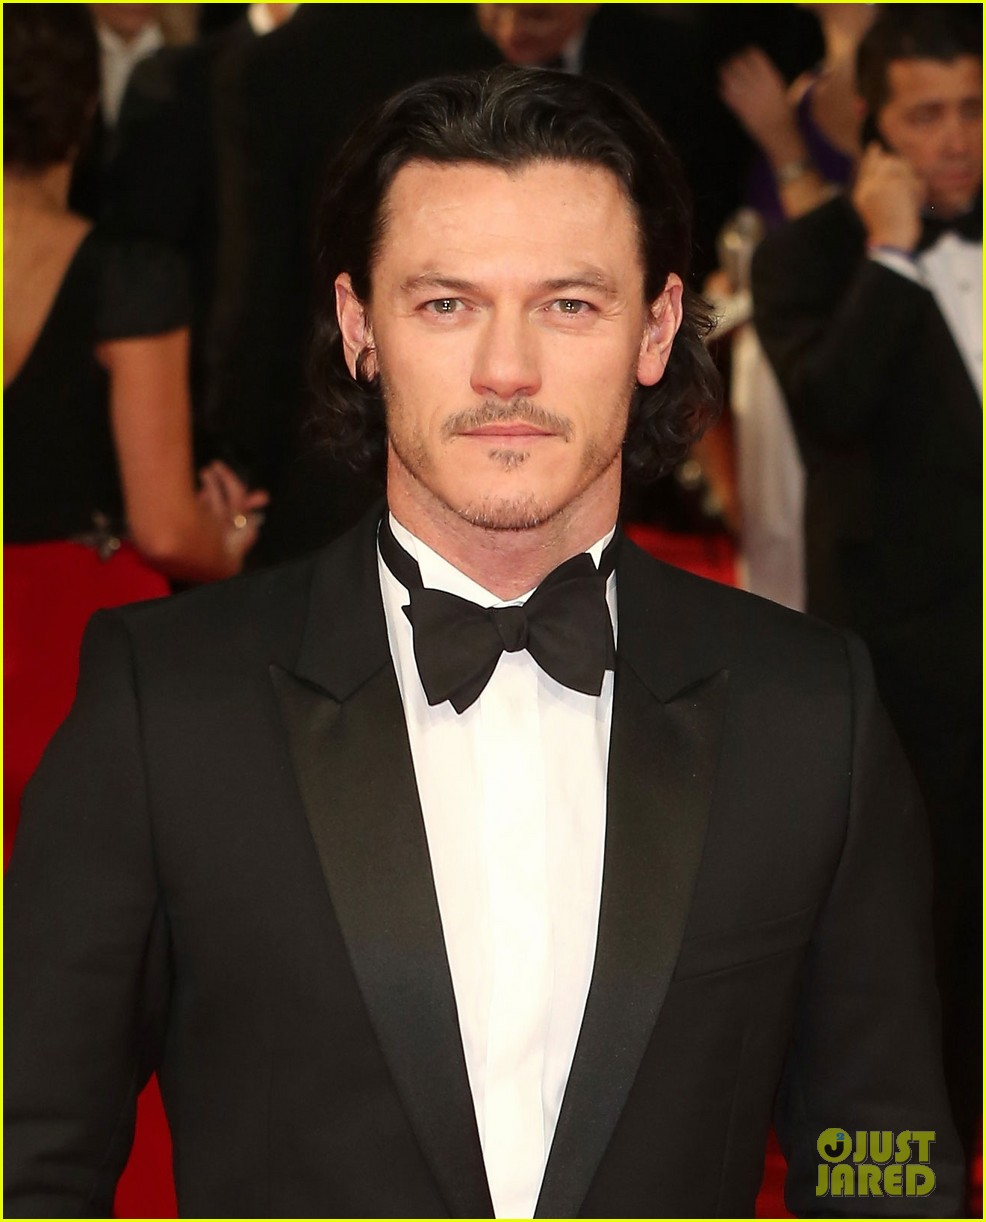 michael fassbender luke evans make us swoon at baftas 2014 02